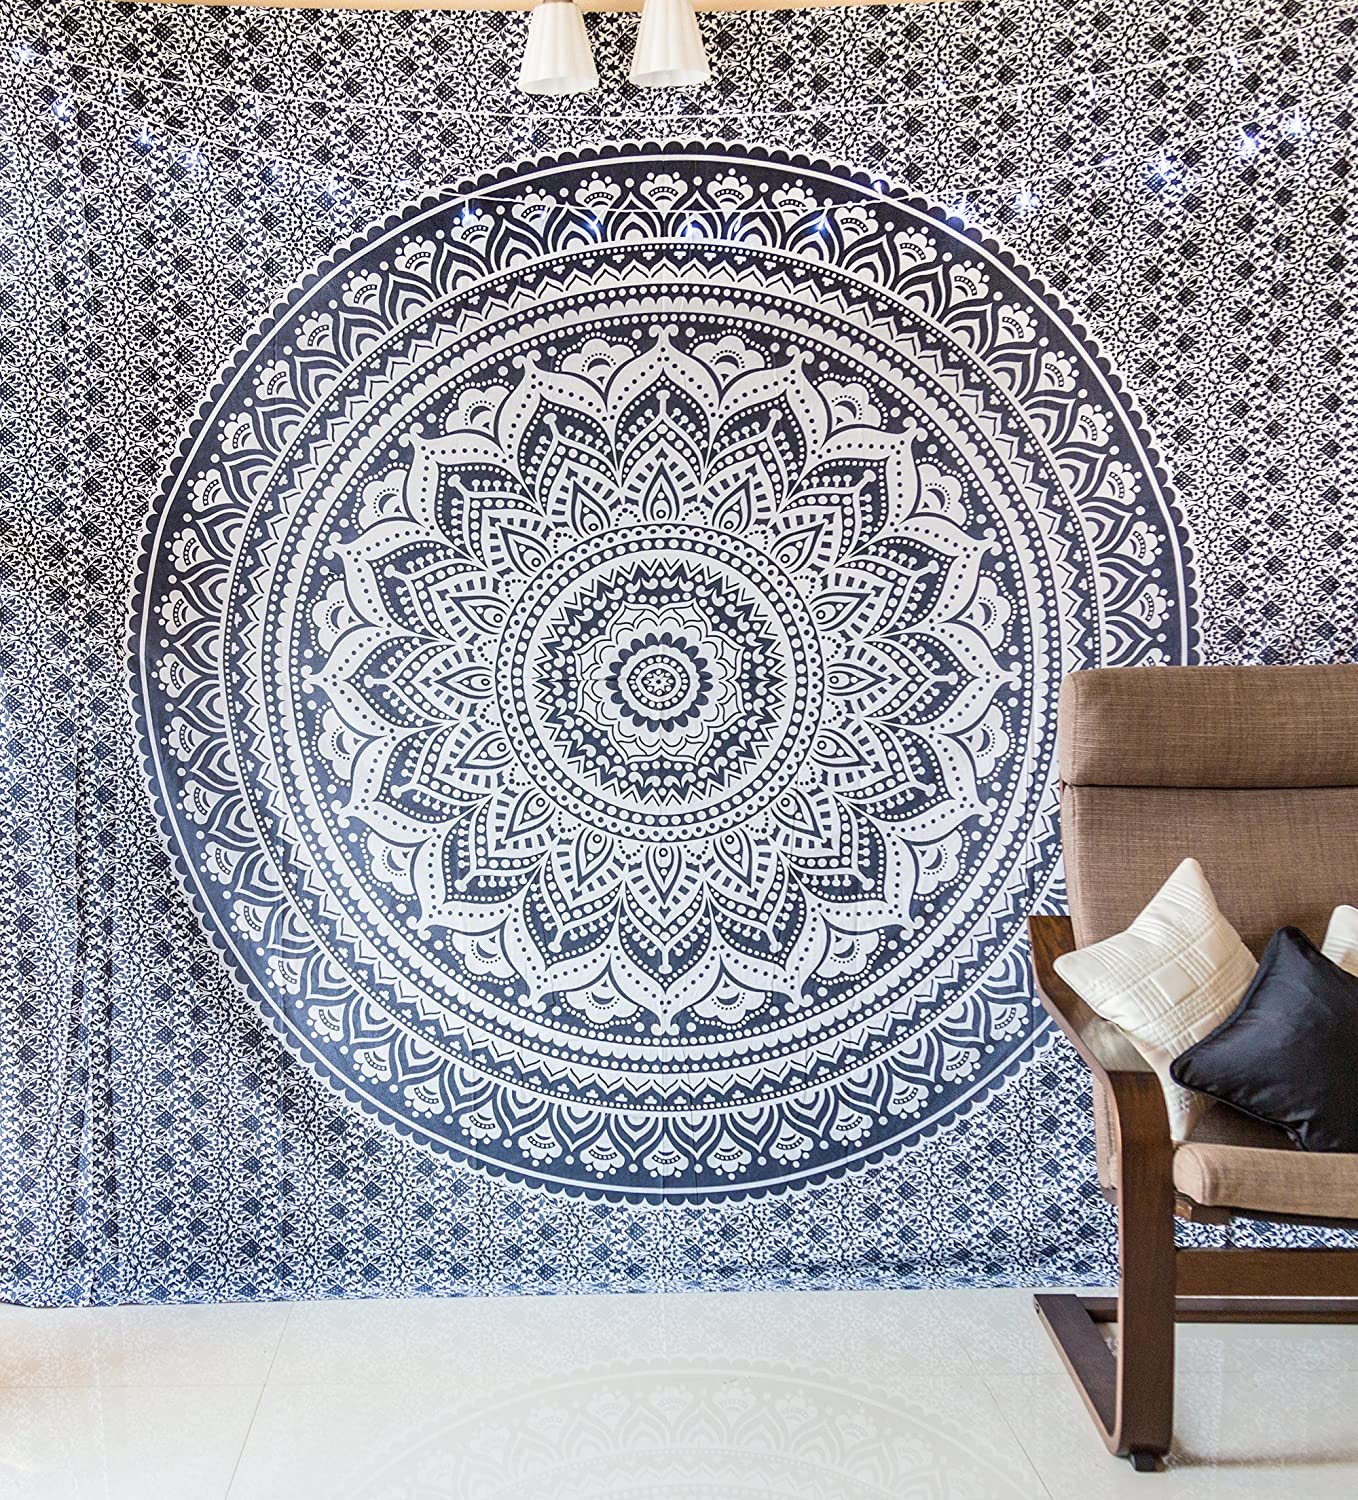 amazoncom indie pop mandala tapestry bedding with pillow covers  - amazoncom indie pop mandala tapestry bedding with pillow covers indianbohemian hippie tapestry wall hanging hippy blanket or beach throwmandala ombre